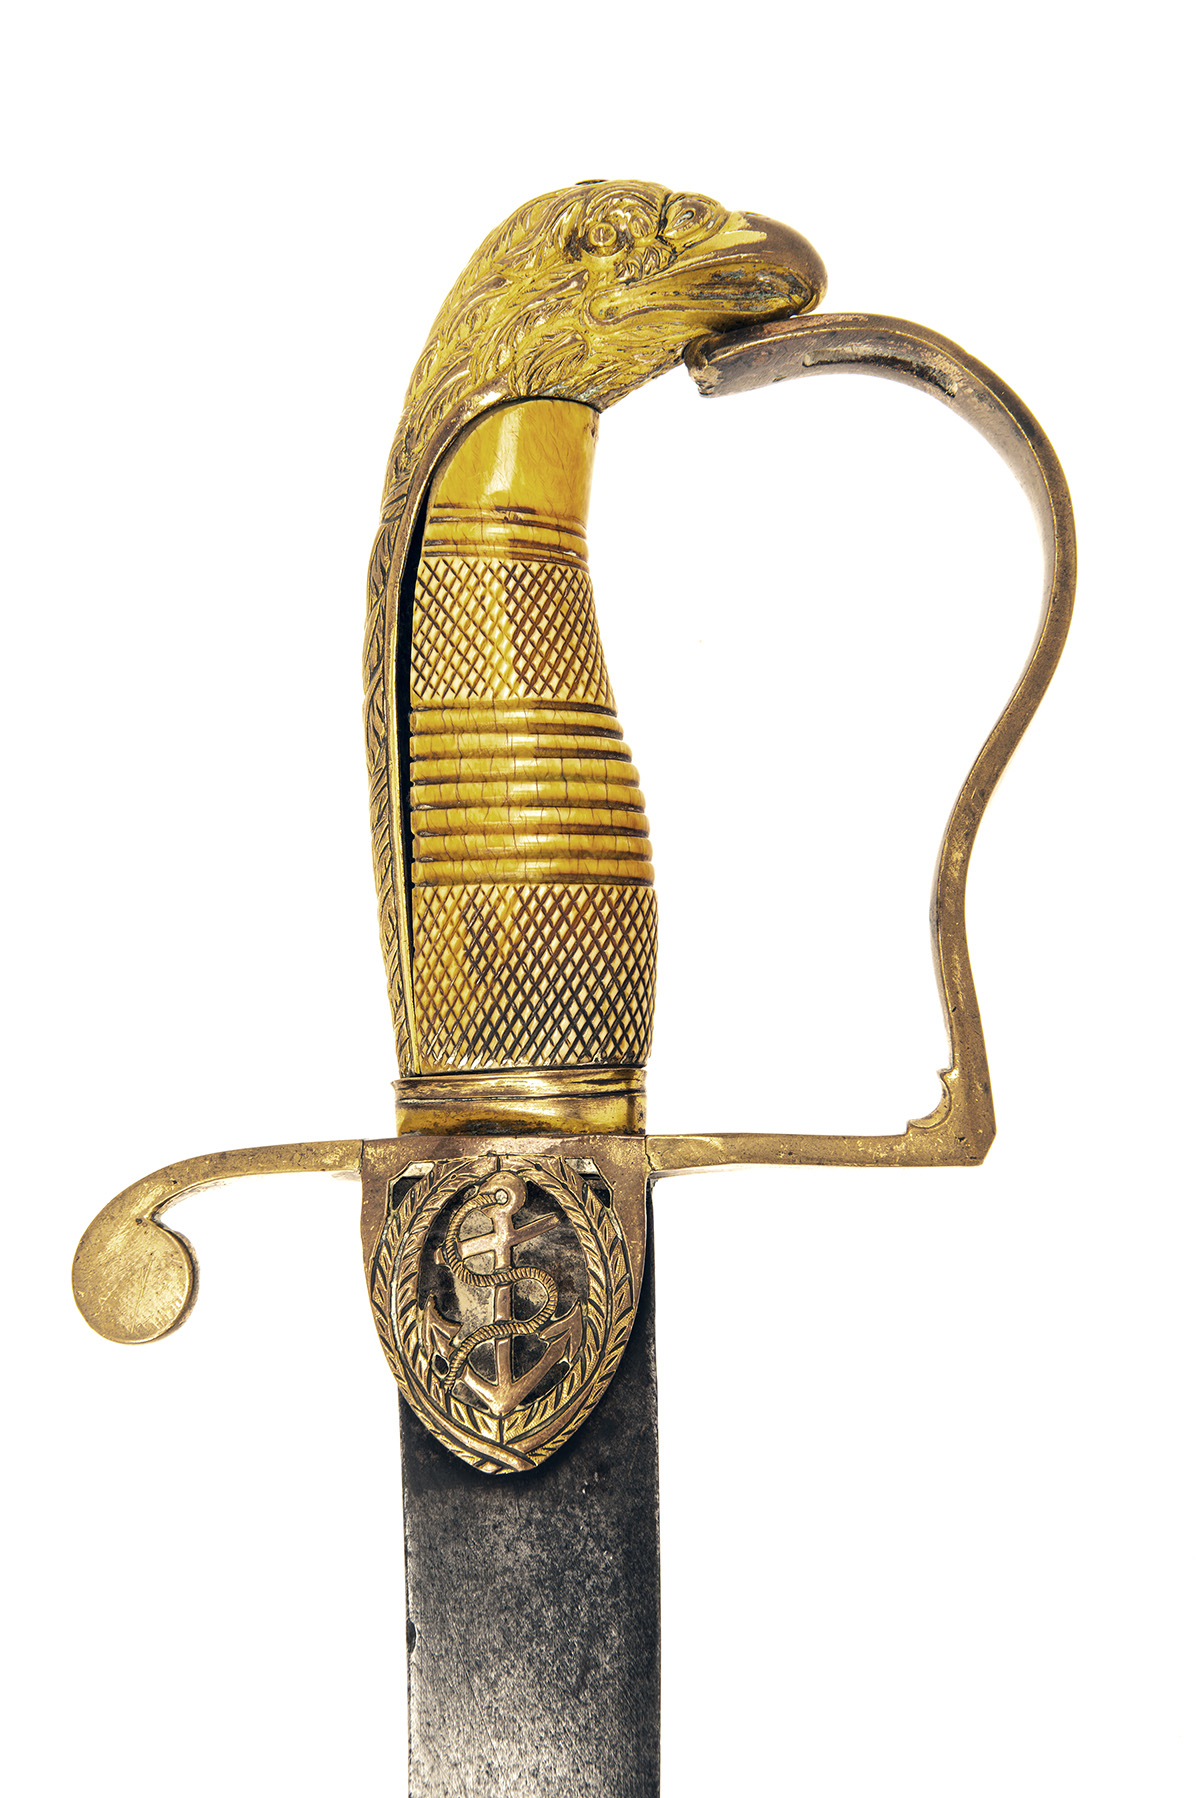 Lot 203 - A GEORGIAN NAVAL OFFICER'S SABRE WITH IVORY HILT, probably English circa 1795, with heavily curved